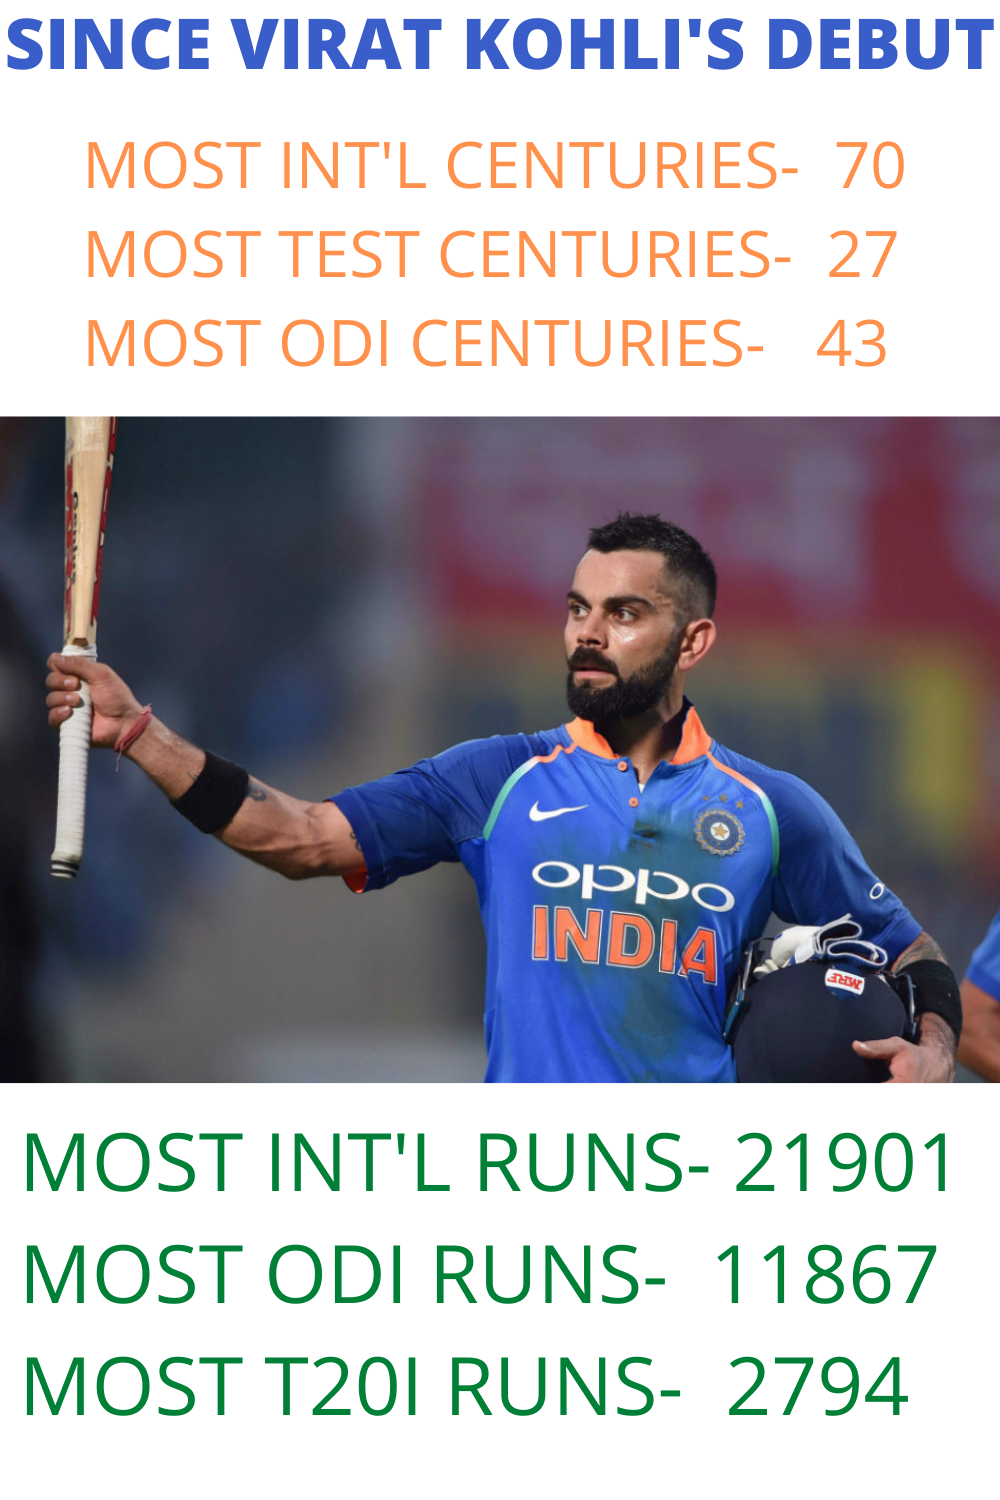 KING KOHLI RULING SINCE THE DAY FIRST in 2020 Cricket t